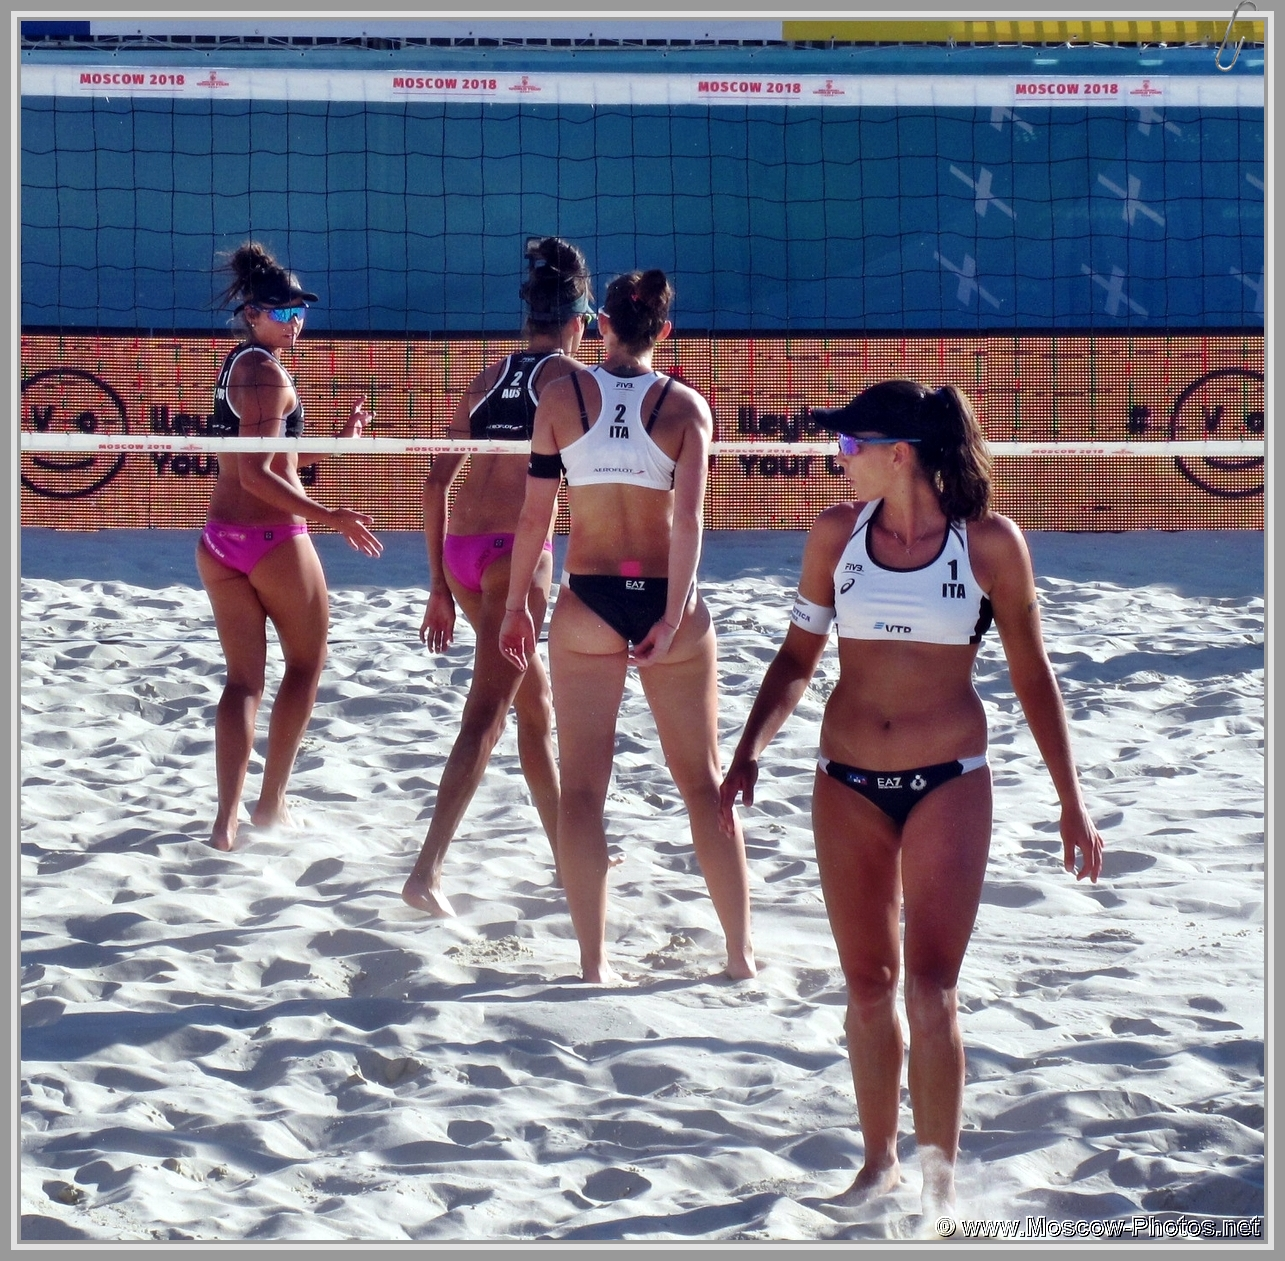 Marta Menegatti and Viktoria Orsi Toth - Italian Team at FIVB Beach Volleyball World Tour in Moscow